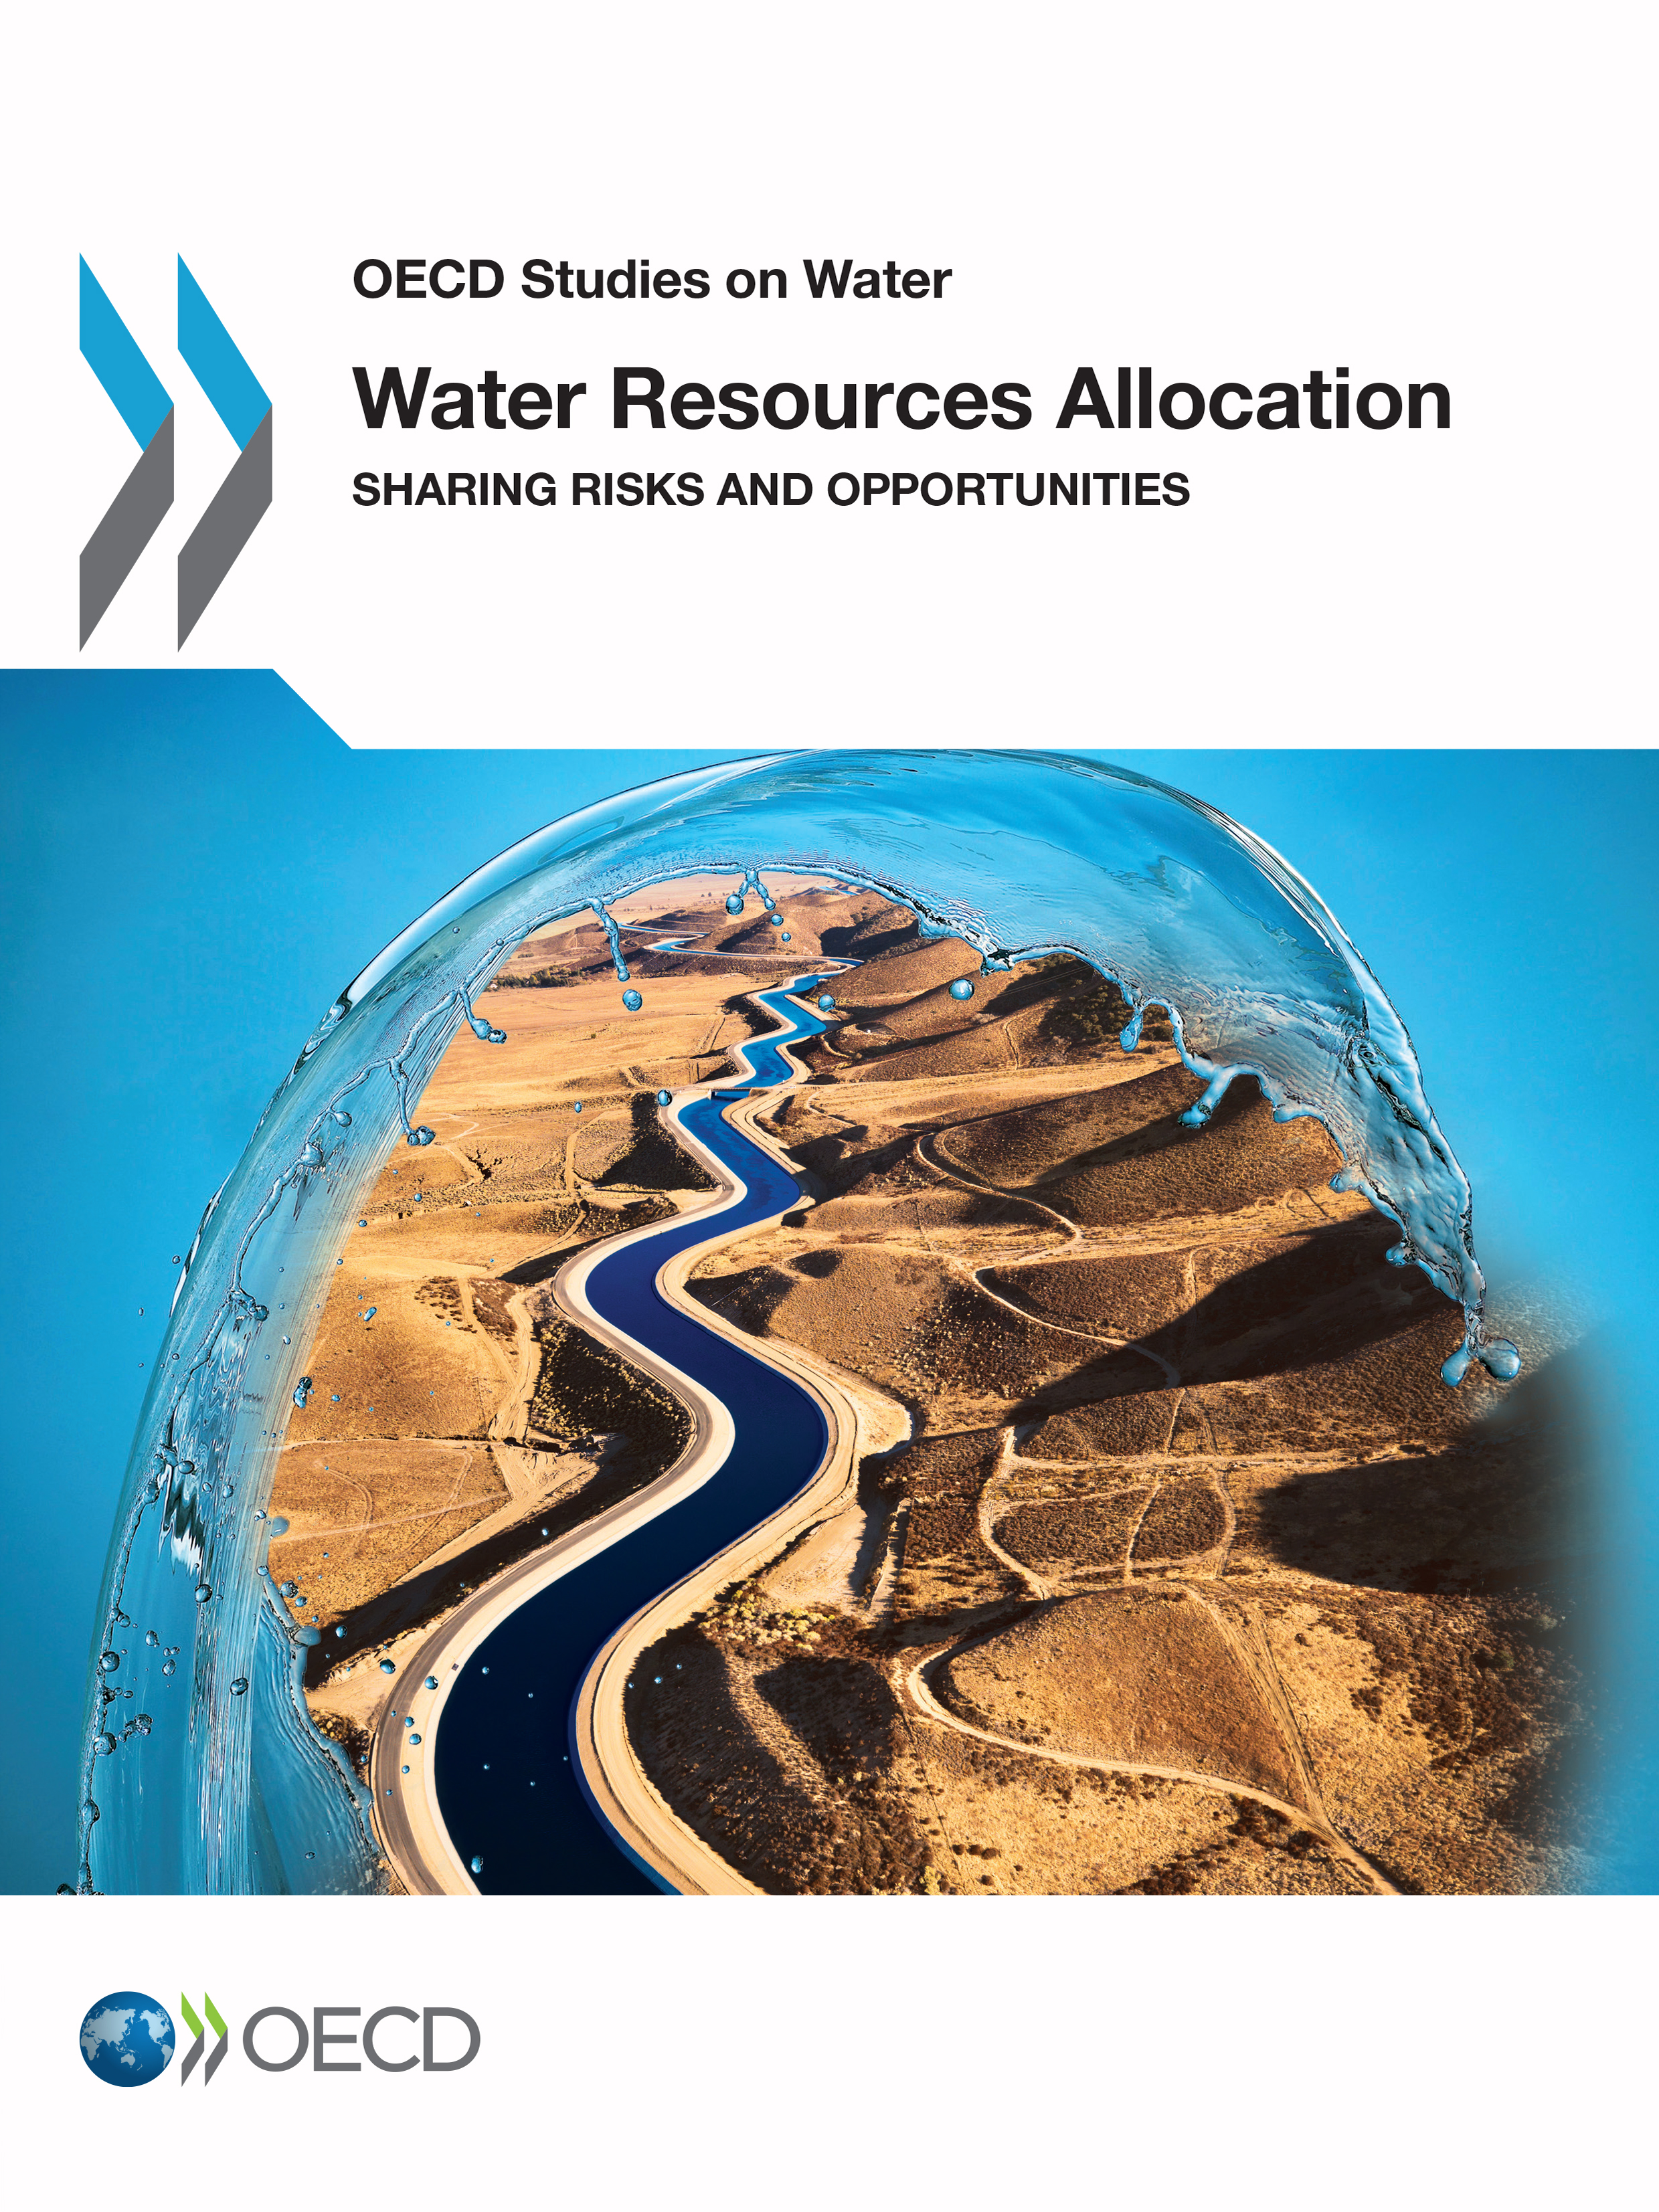 Water Resources Allocation: Sharing Risks and Opportunities